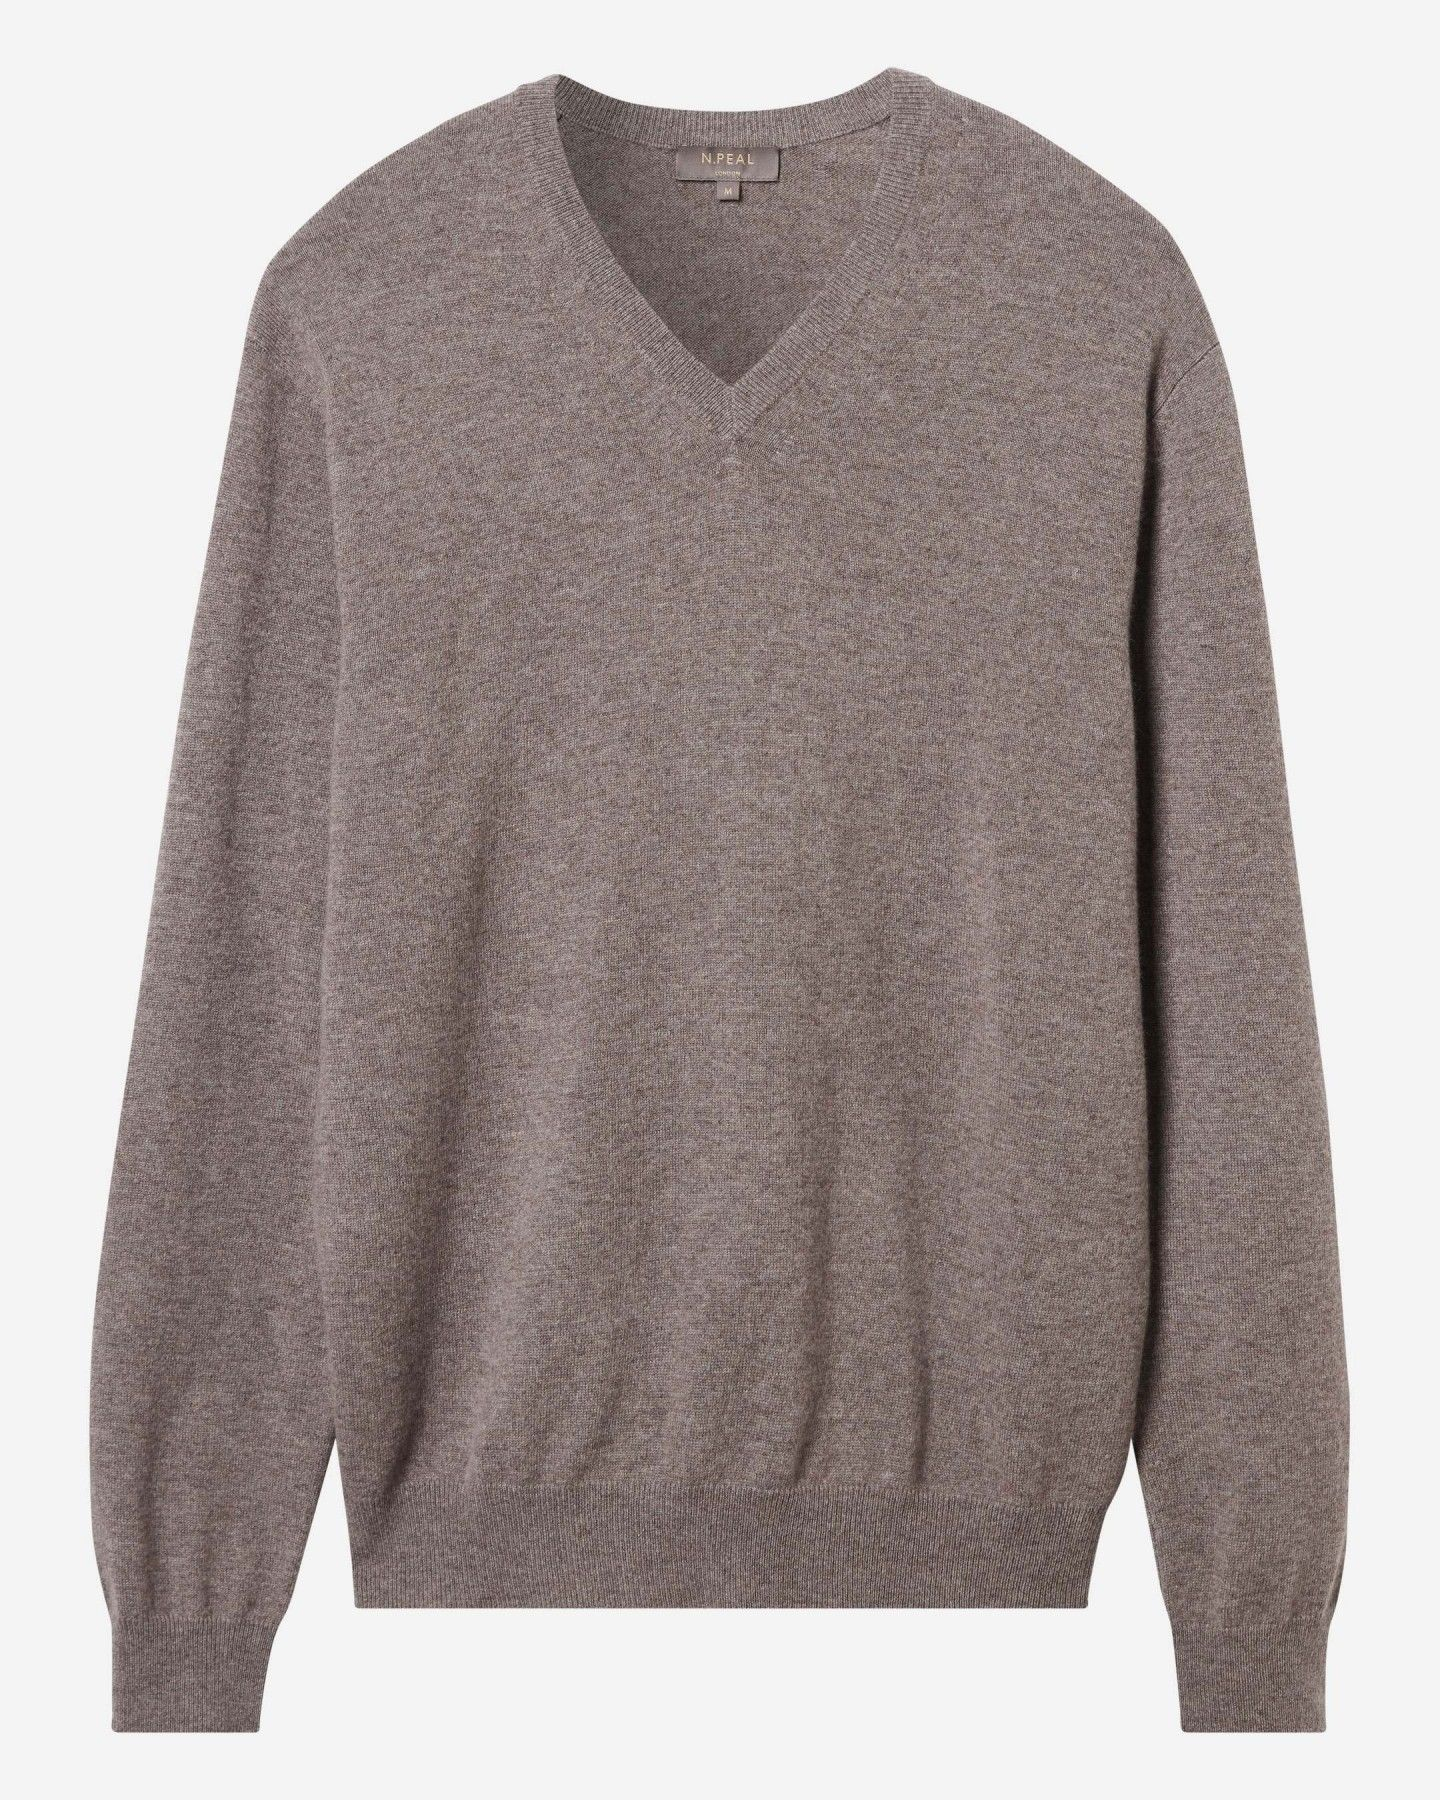 75231d6953e2ee The Burlington V Neck 1ply Cashmere Sweater £269 Taupe Brown | N.Peal,